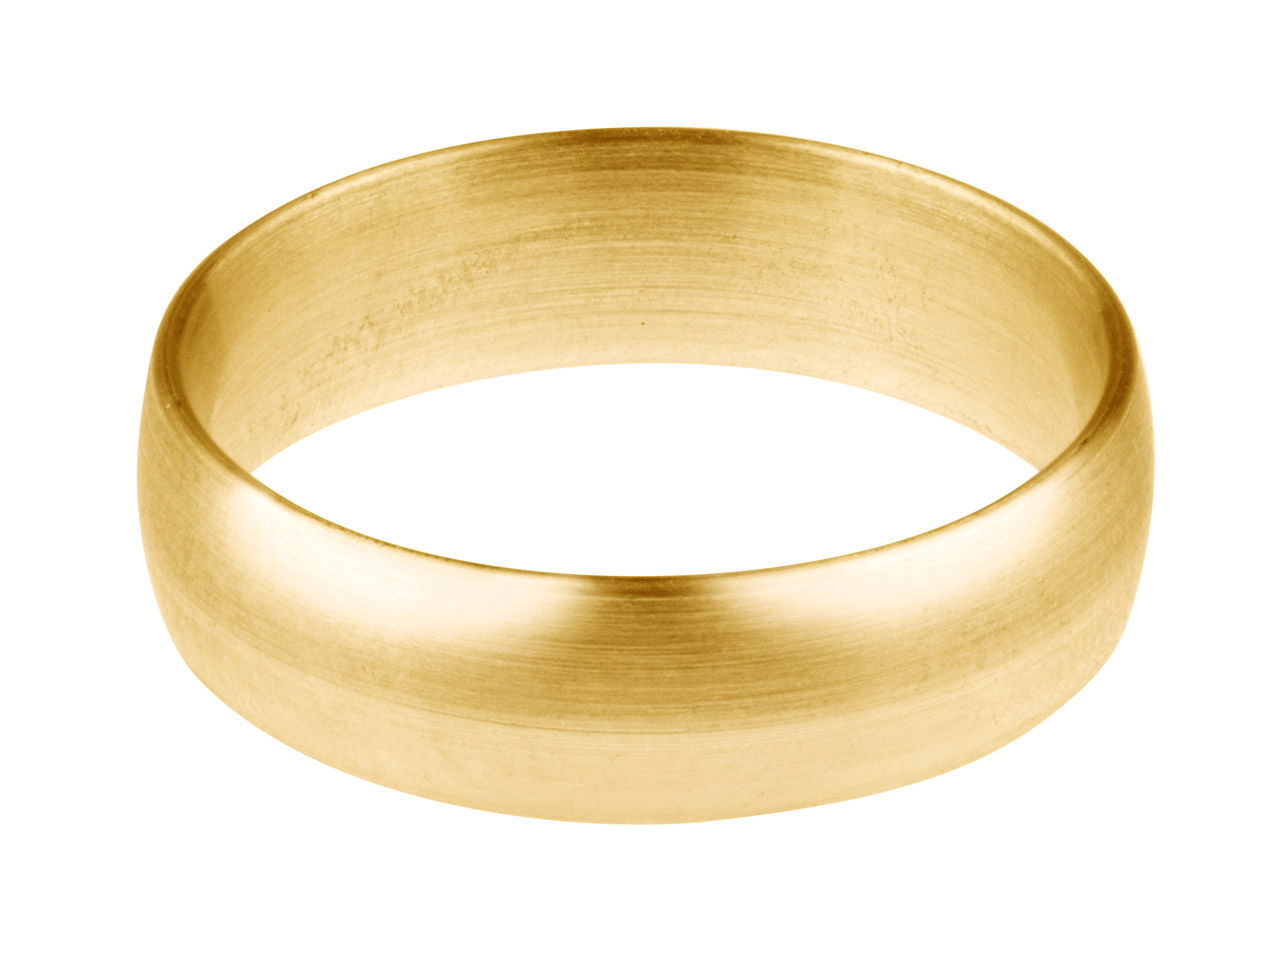 18ct Yellow Blended Court          Wedding Ring 2.0mm I 1.3mm Wall    Hallmarked Wall Thickness 1.30mm